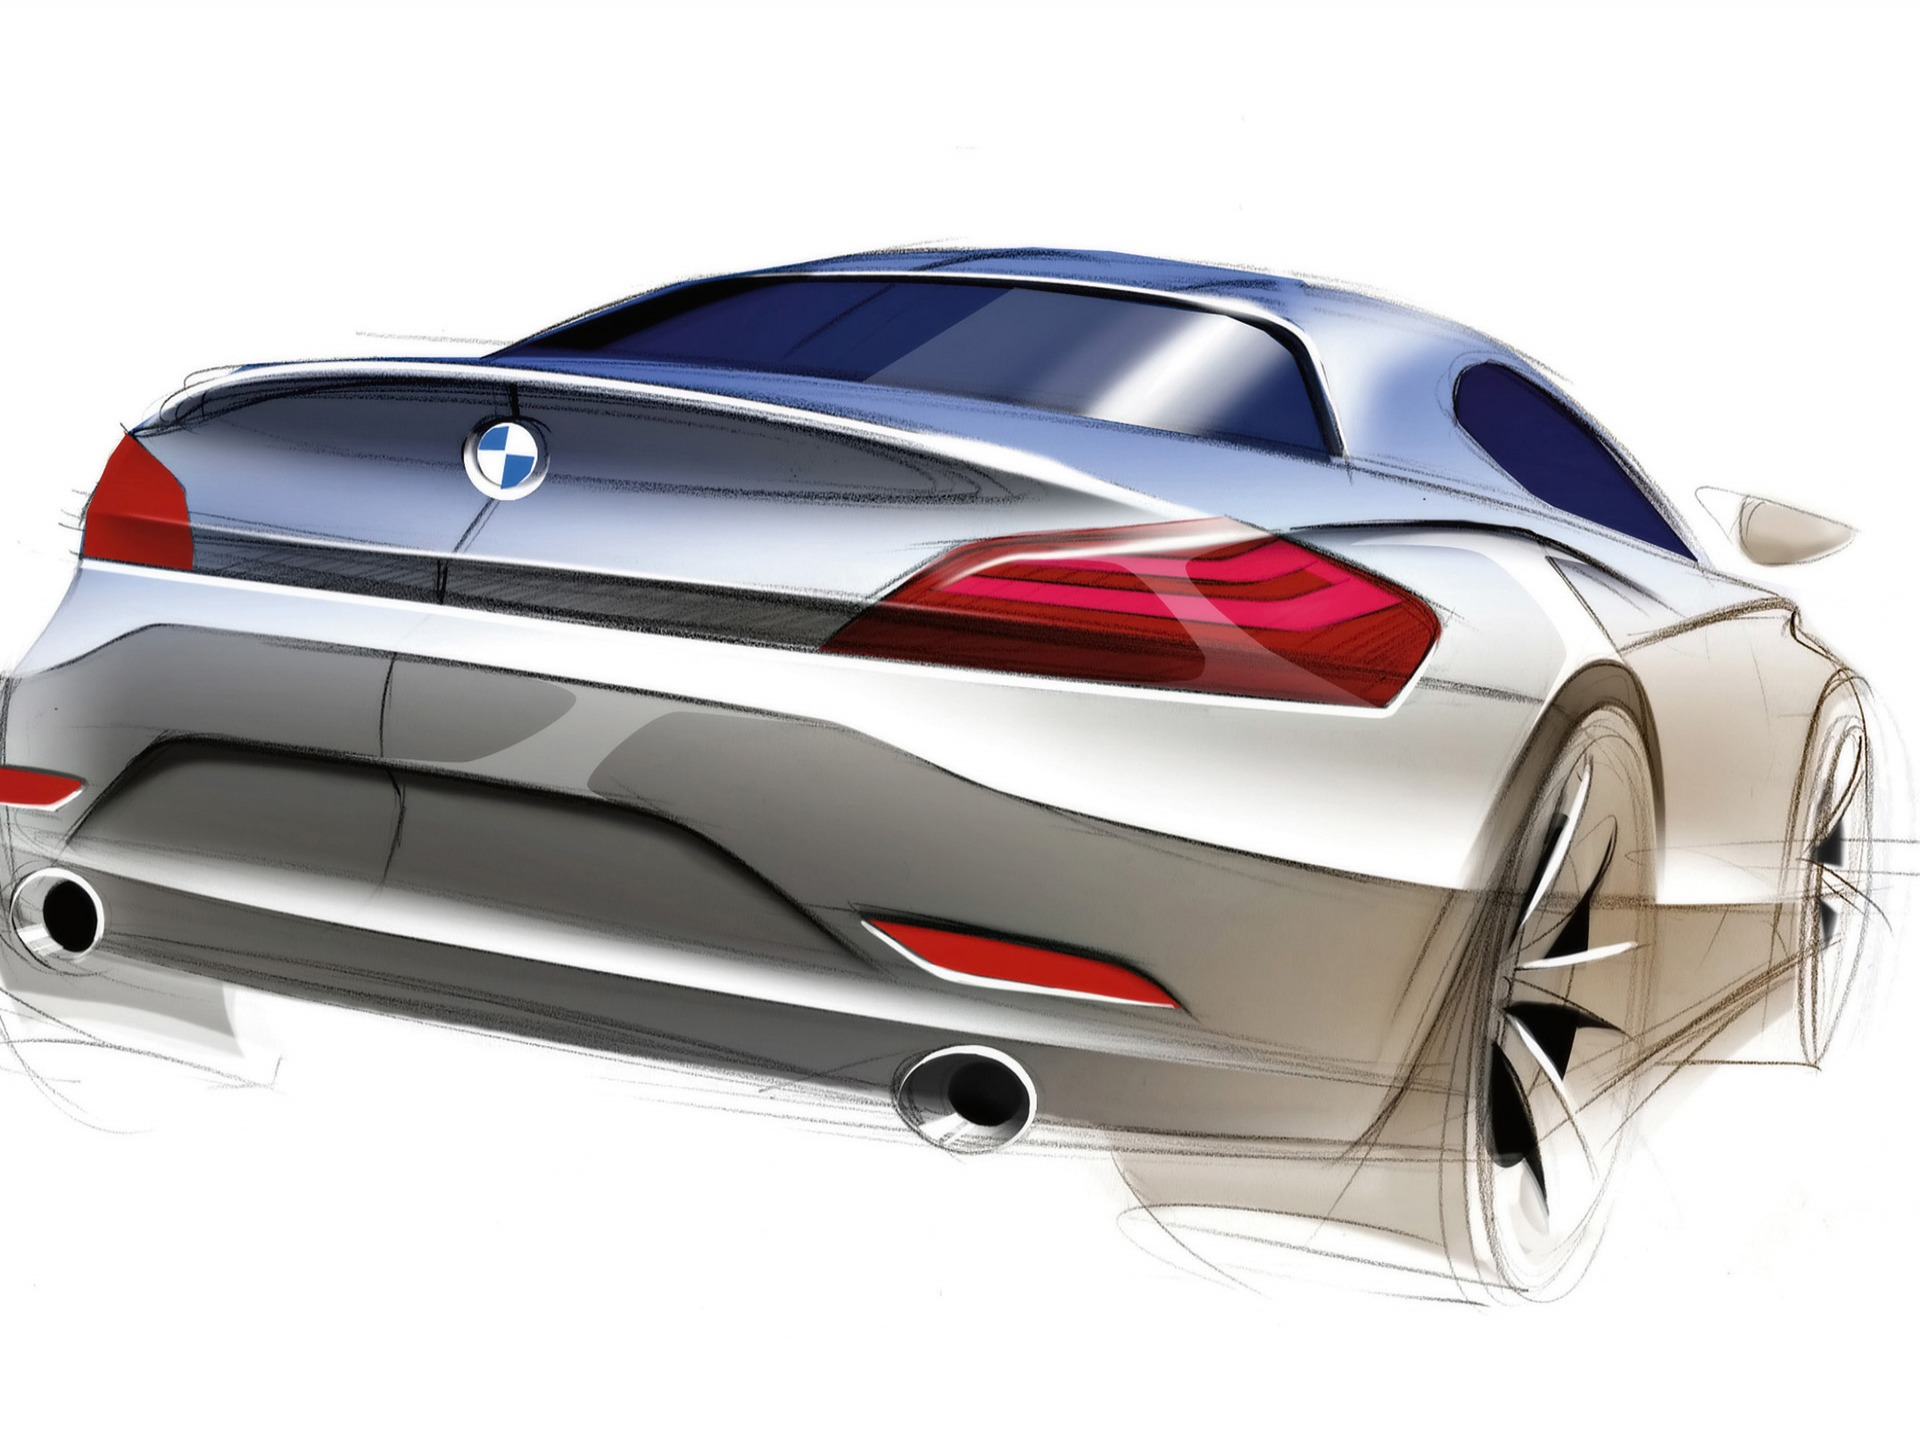 Bmw Z4 Roadster Sketch Wallpaper Bmw Cars Wallpapers In Jpg Format